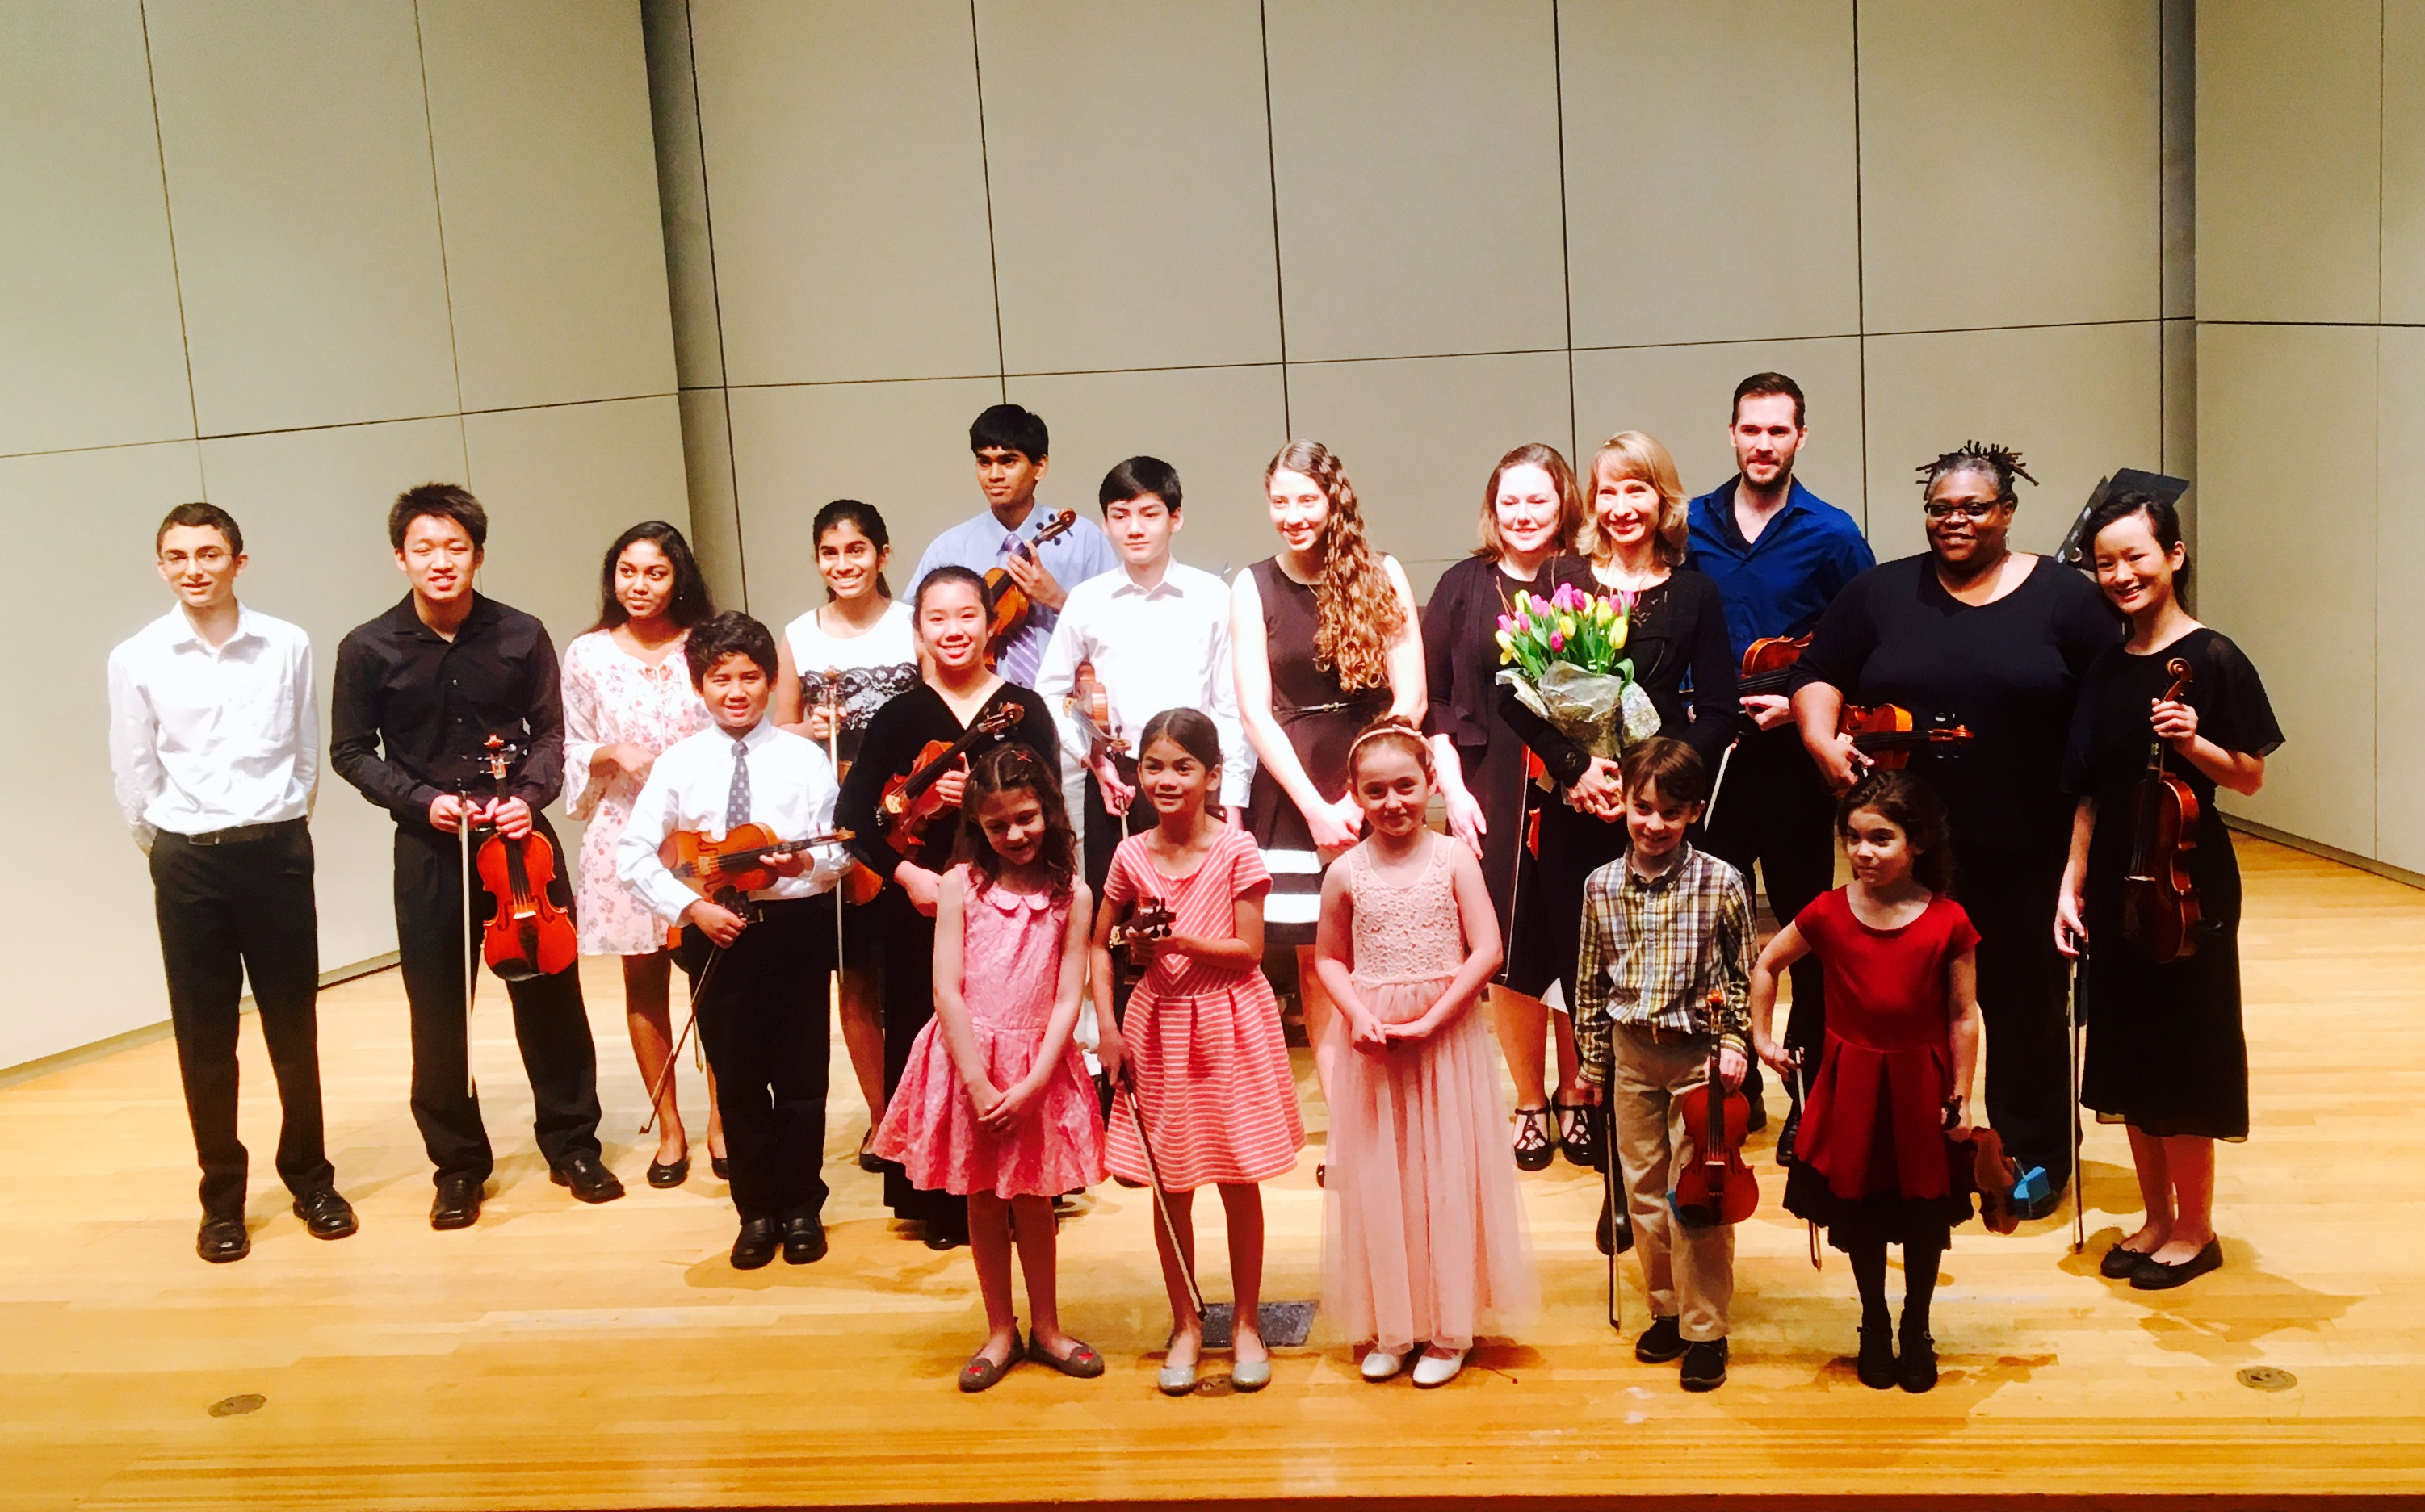 Studio recital at University of St.Thomas Cullen Hall